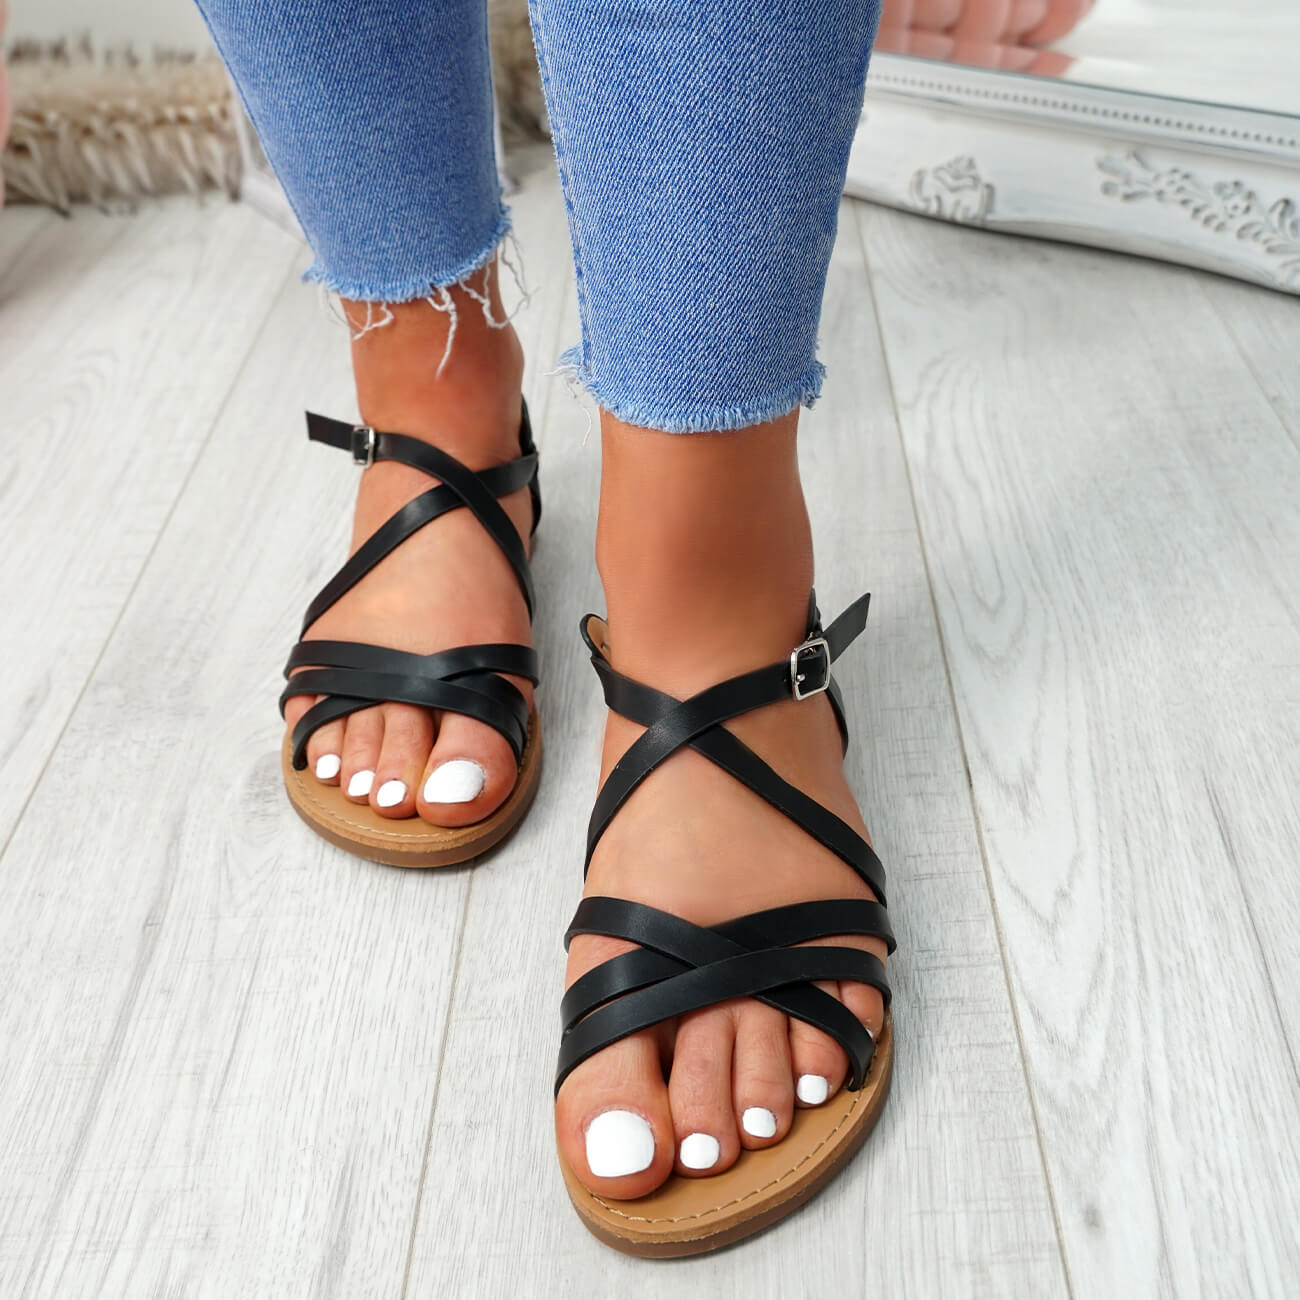 WOMENS-LADIES-ANKLE-STRAP-PEEP-TOE-BUCKLE-FLAT-SANDALS-SUMMER-CASUAL-SHOES thumbnail 7